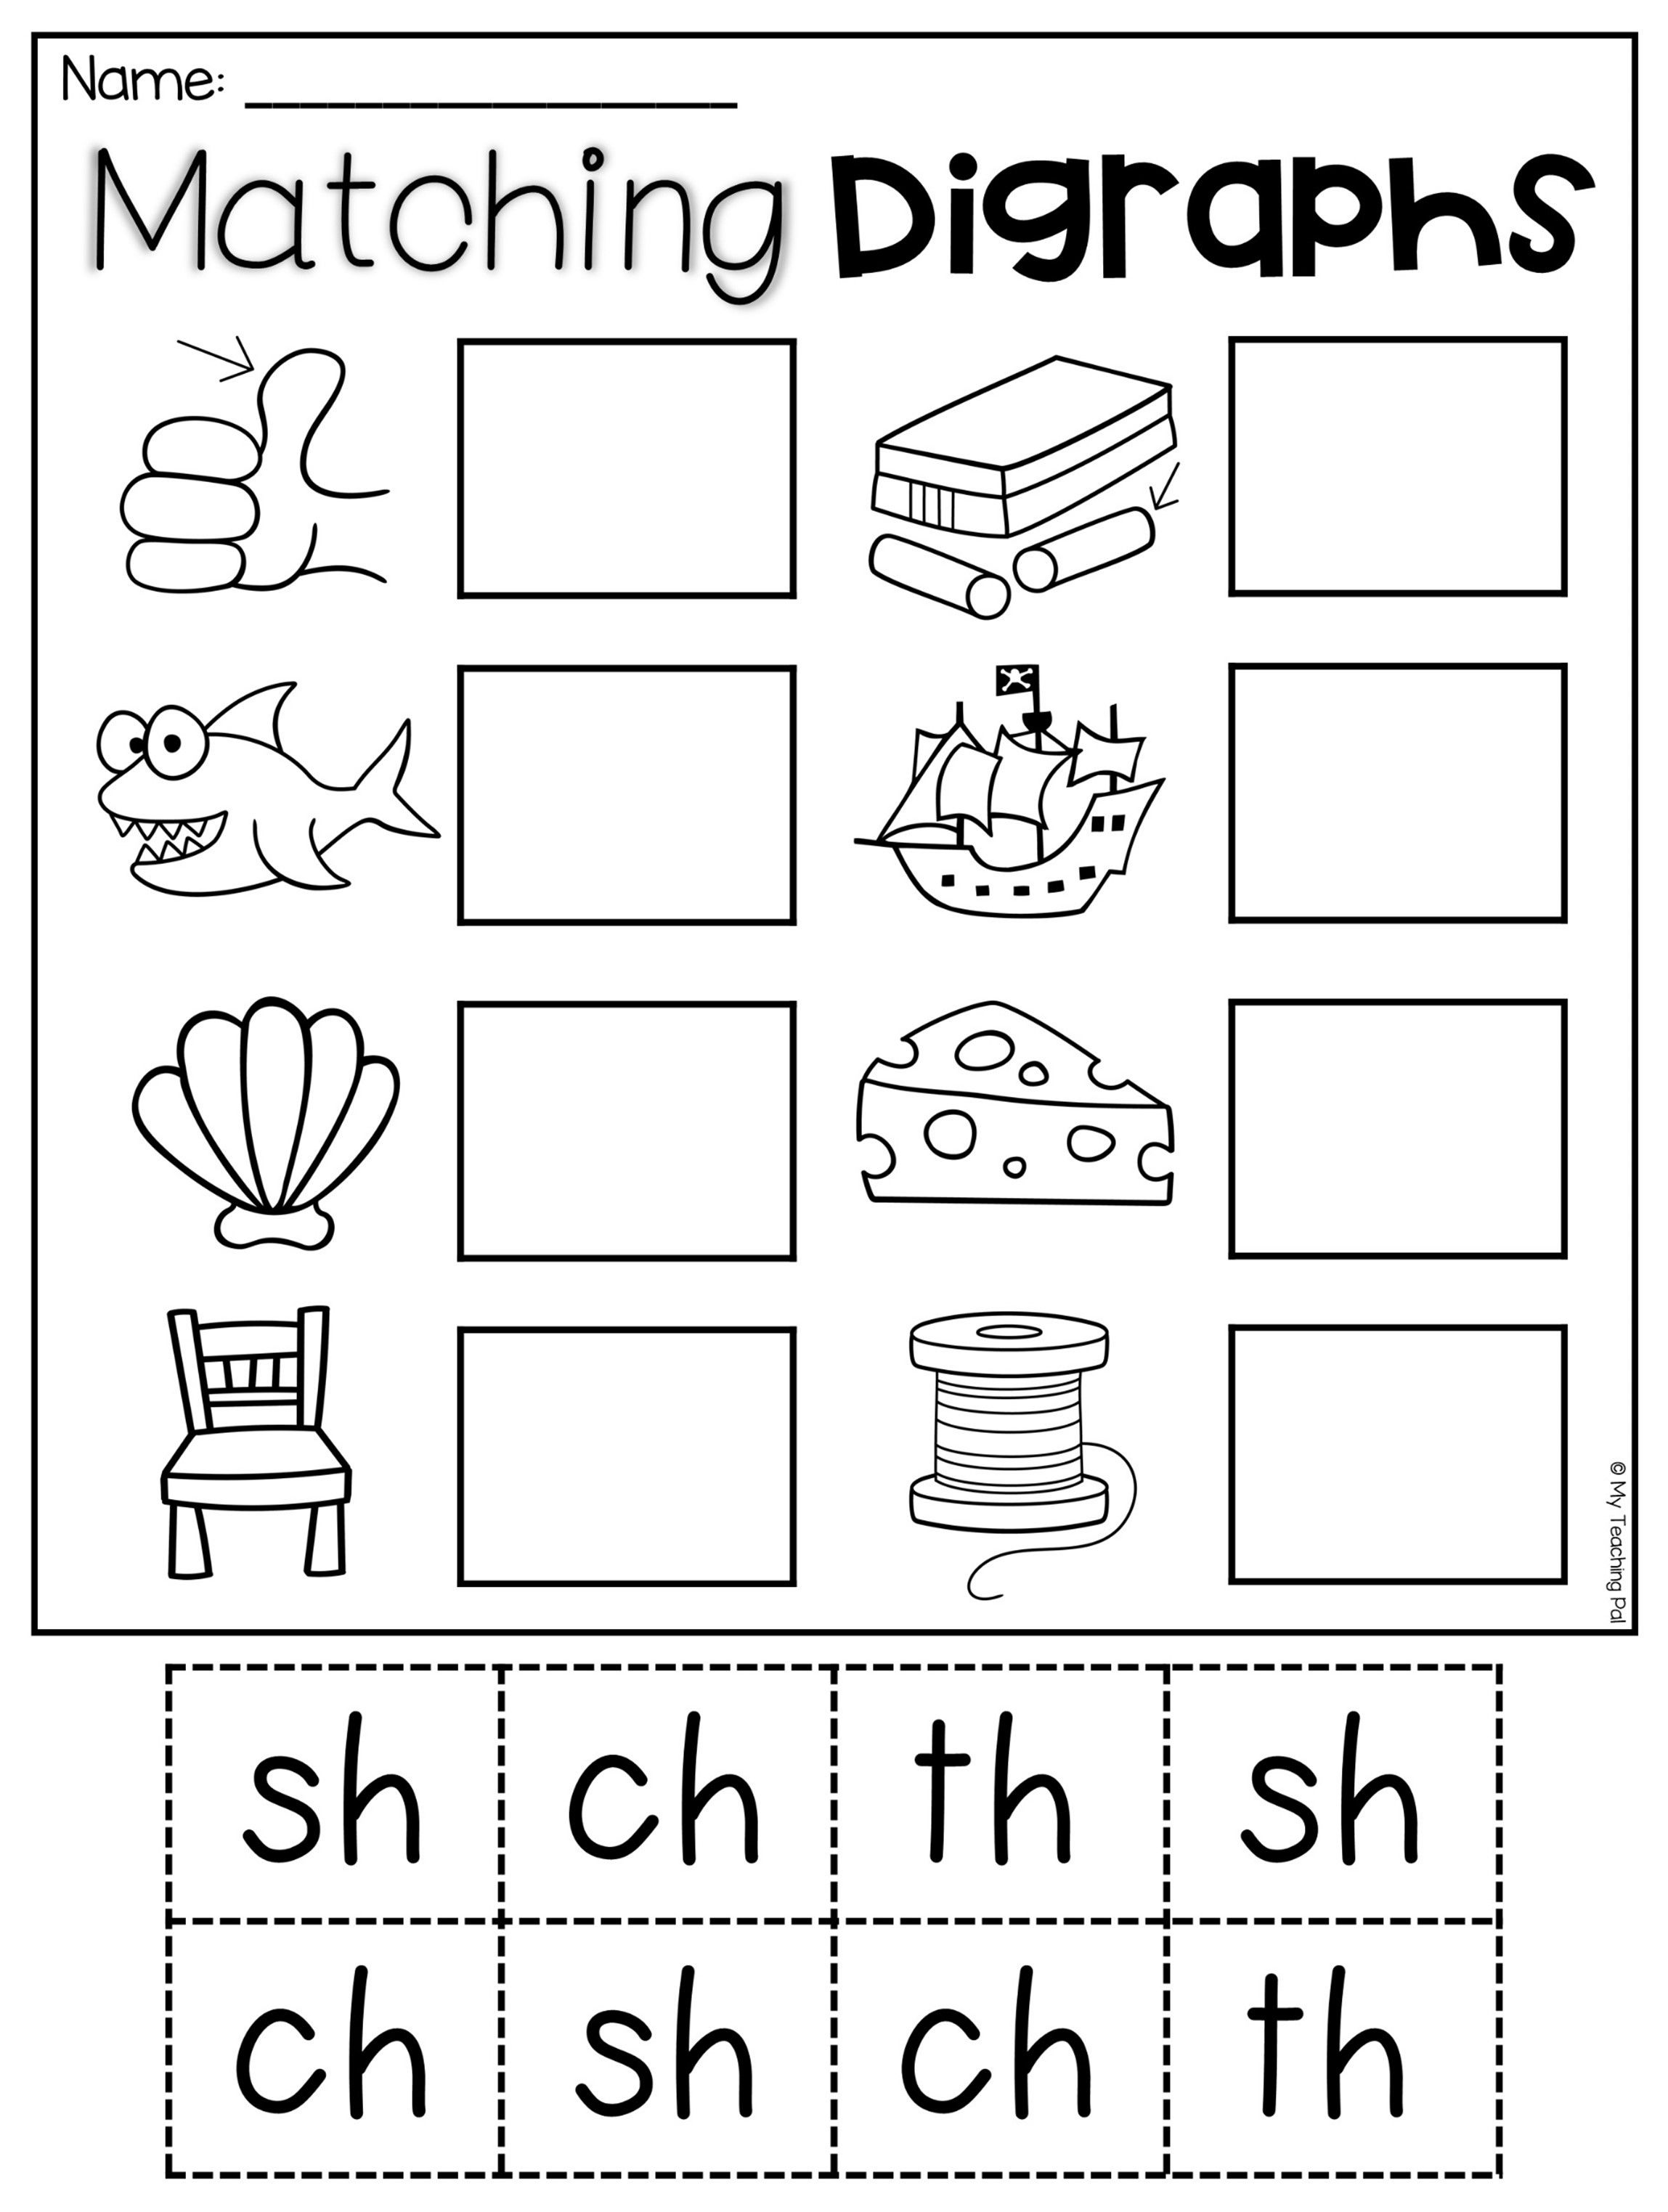 Worksheets Sh Worksheets digraph worksheet packet ch sh th wh ph my tpt store matching digraphs for this is jammed full of worksheets to help your students practice it inclu